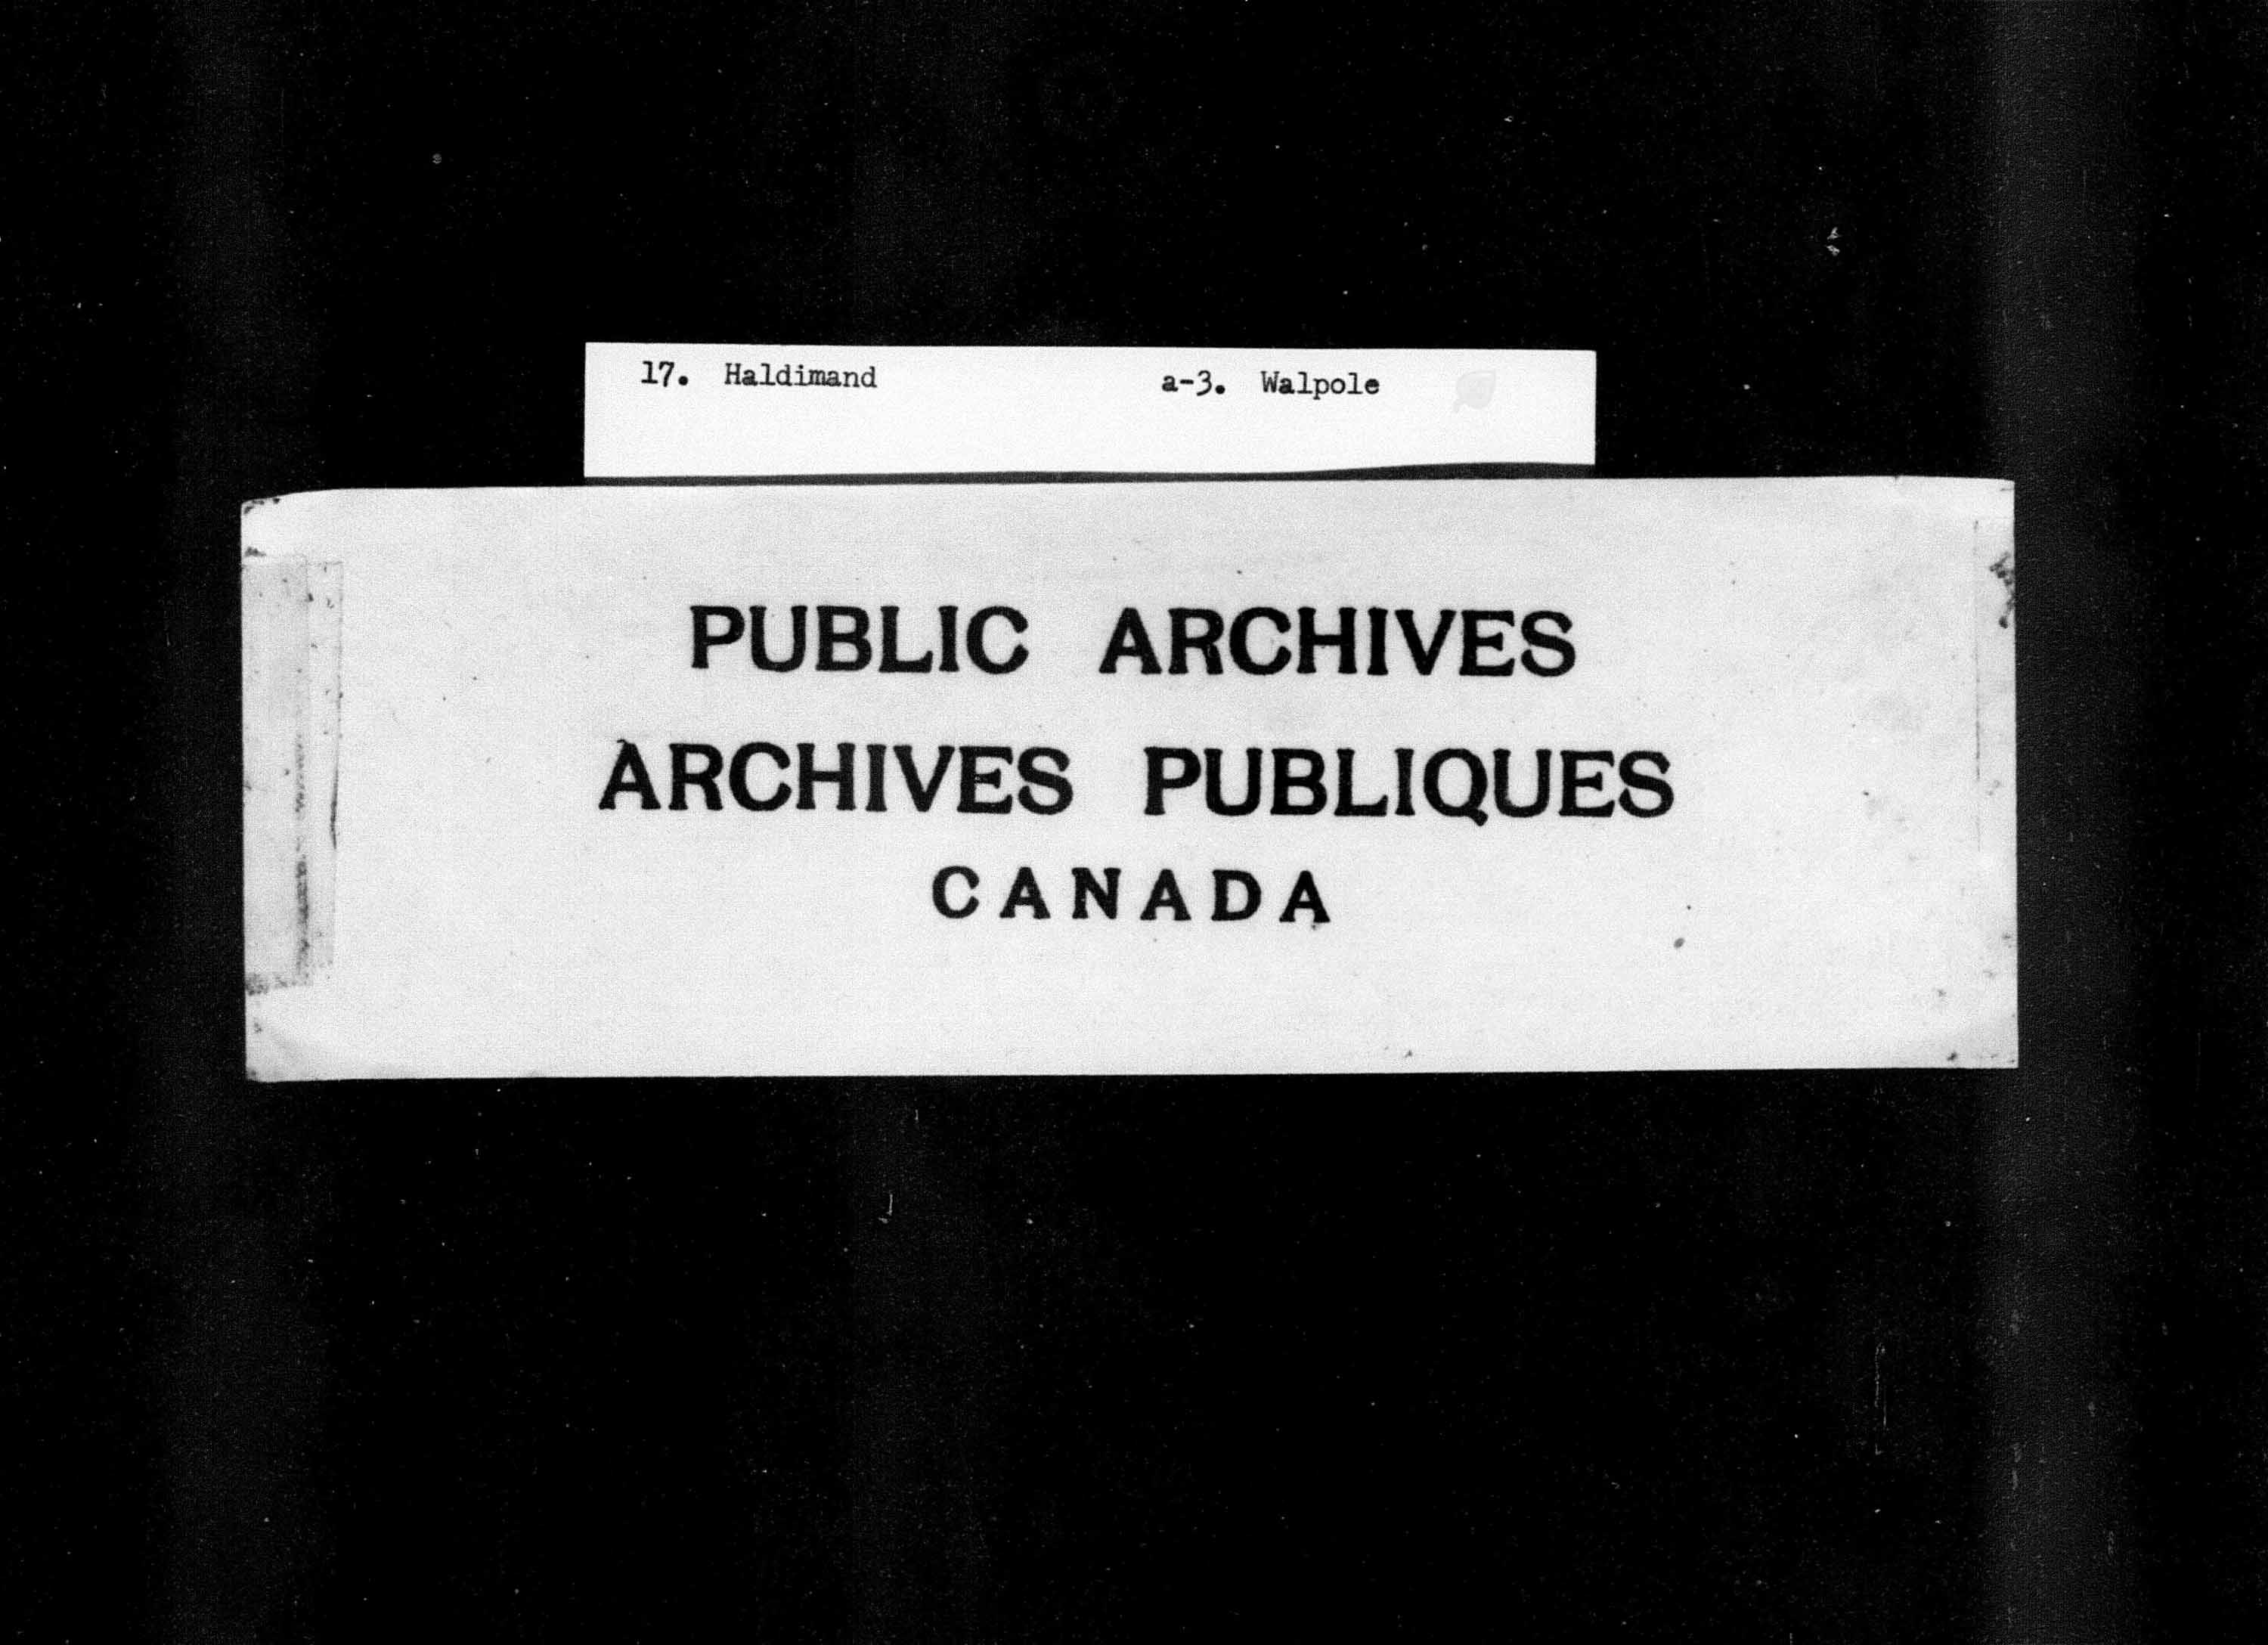 Title: Census of Canada, 1871 - Mikan Number: 142105 - Microform: c-9916